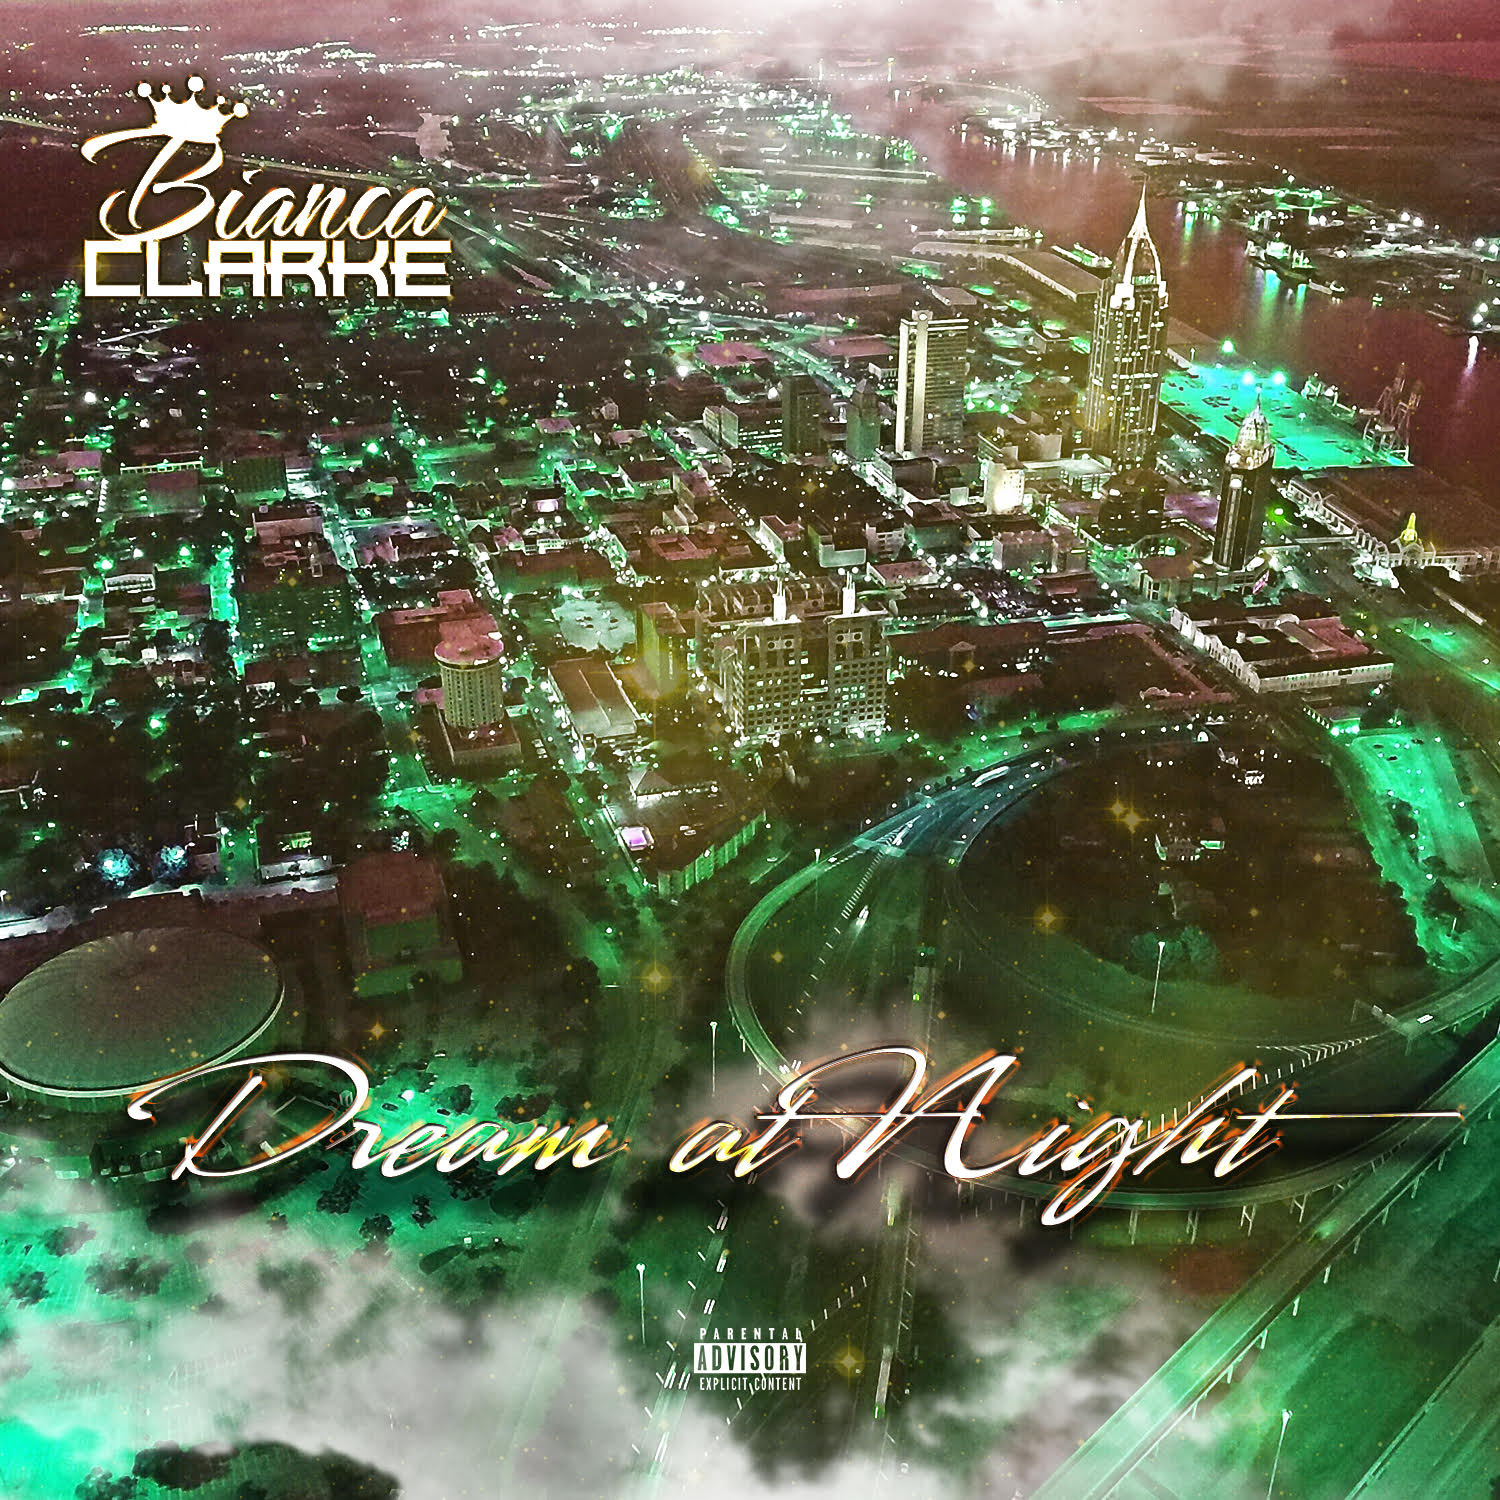 New Music: Bianca Clarke – Dream at Night | @QB_Bianca